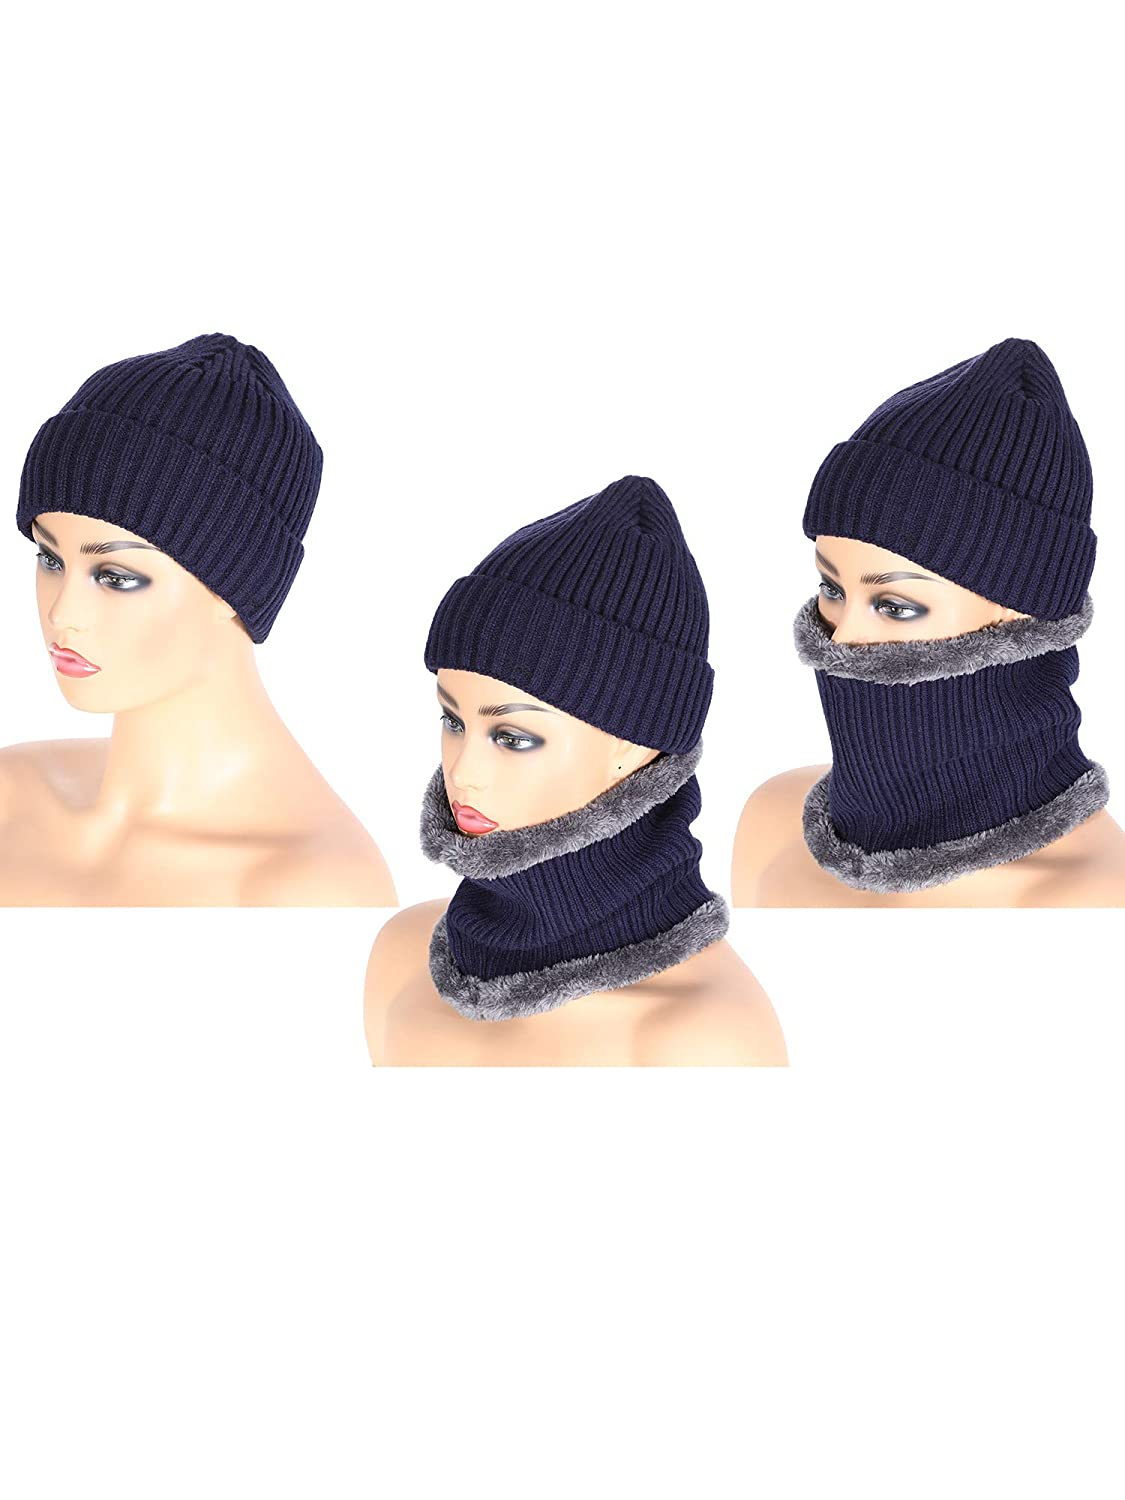 Tatuo 4 Pieces Ski Warm Set Includes Winter Hat Scarf Warmer Gloves Winter Outdoor Earmuffs for Adults Kids Set 8